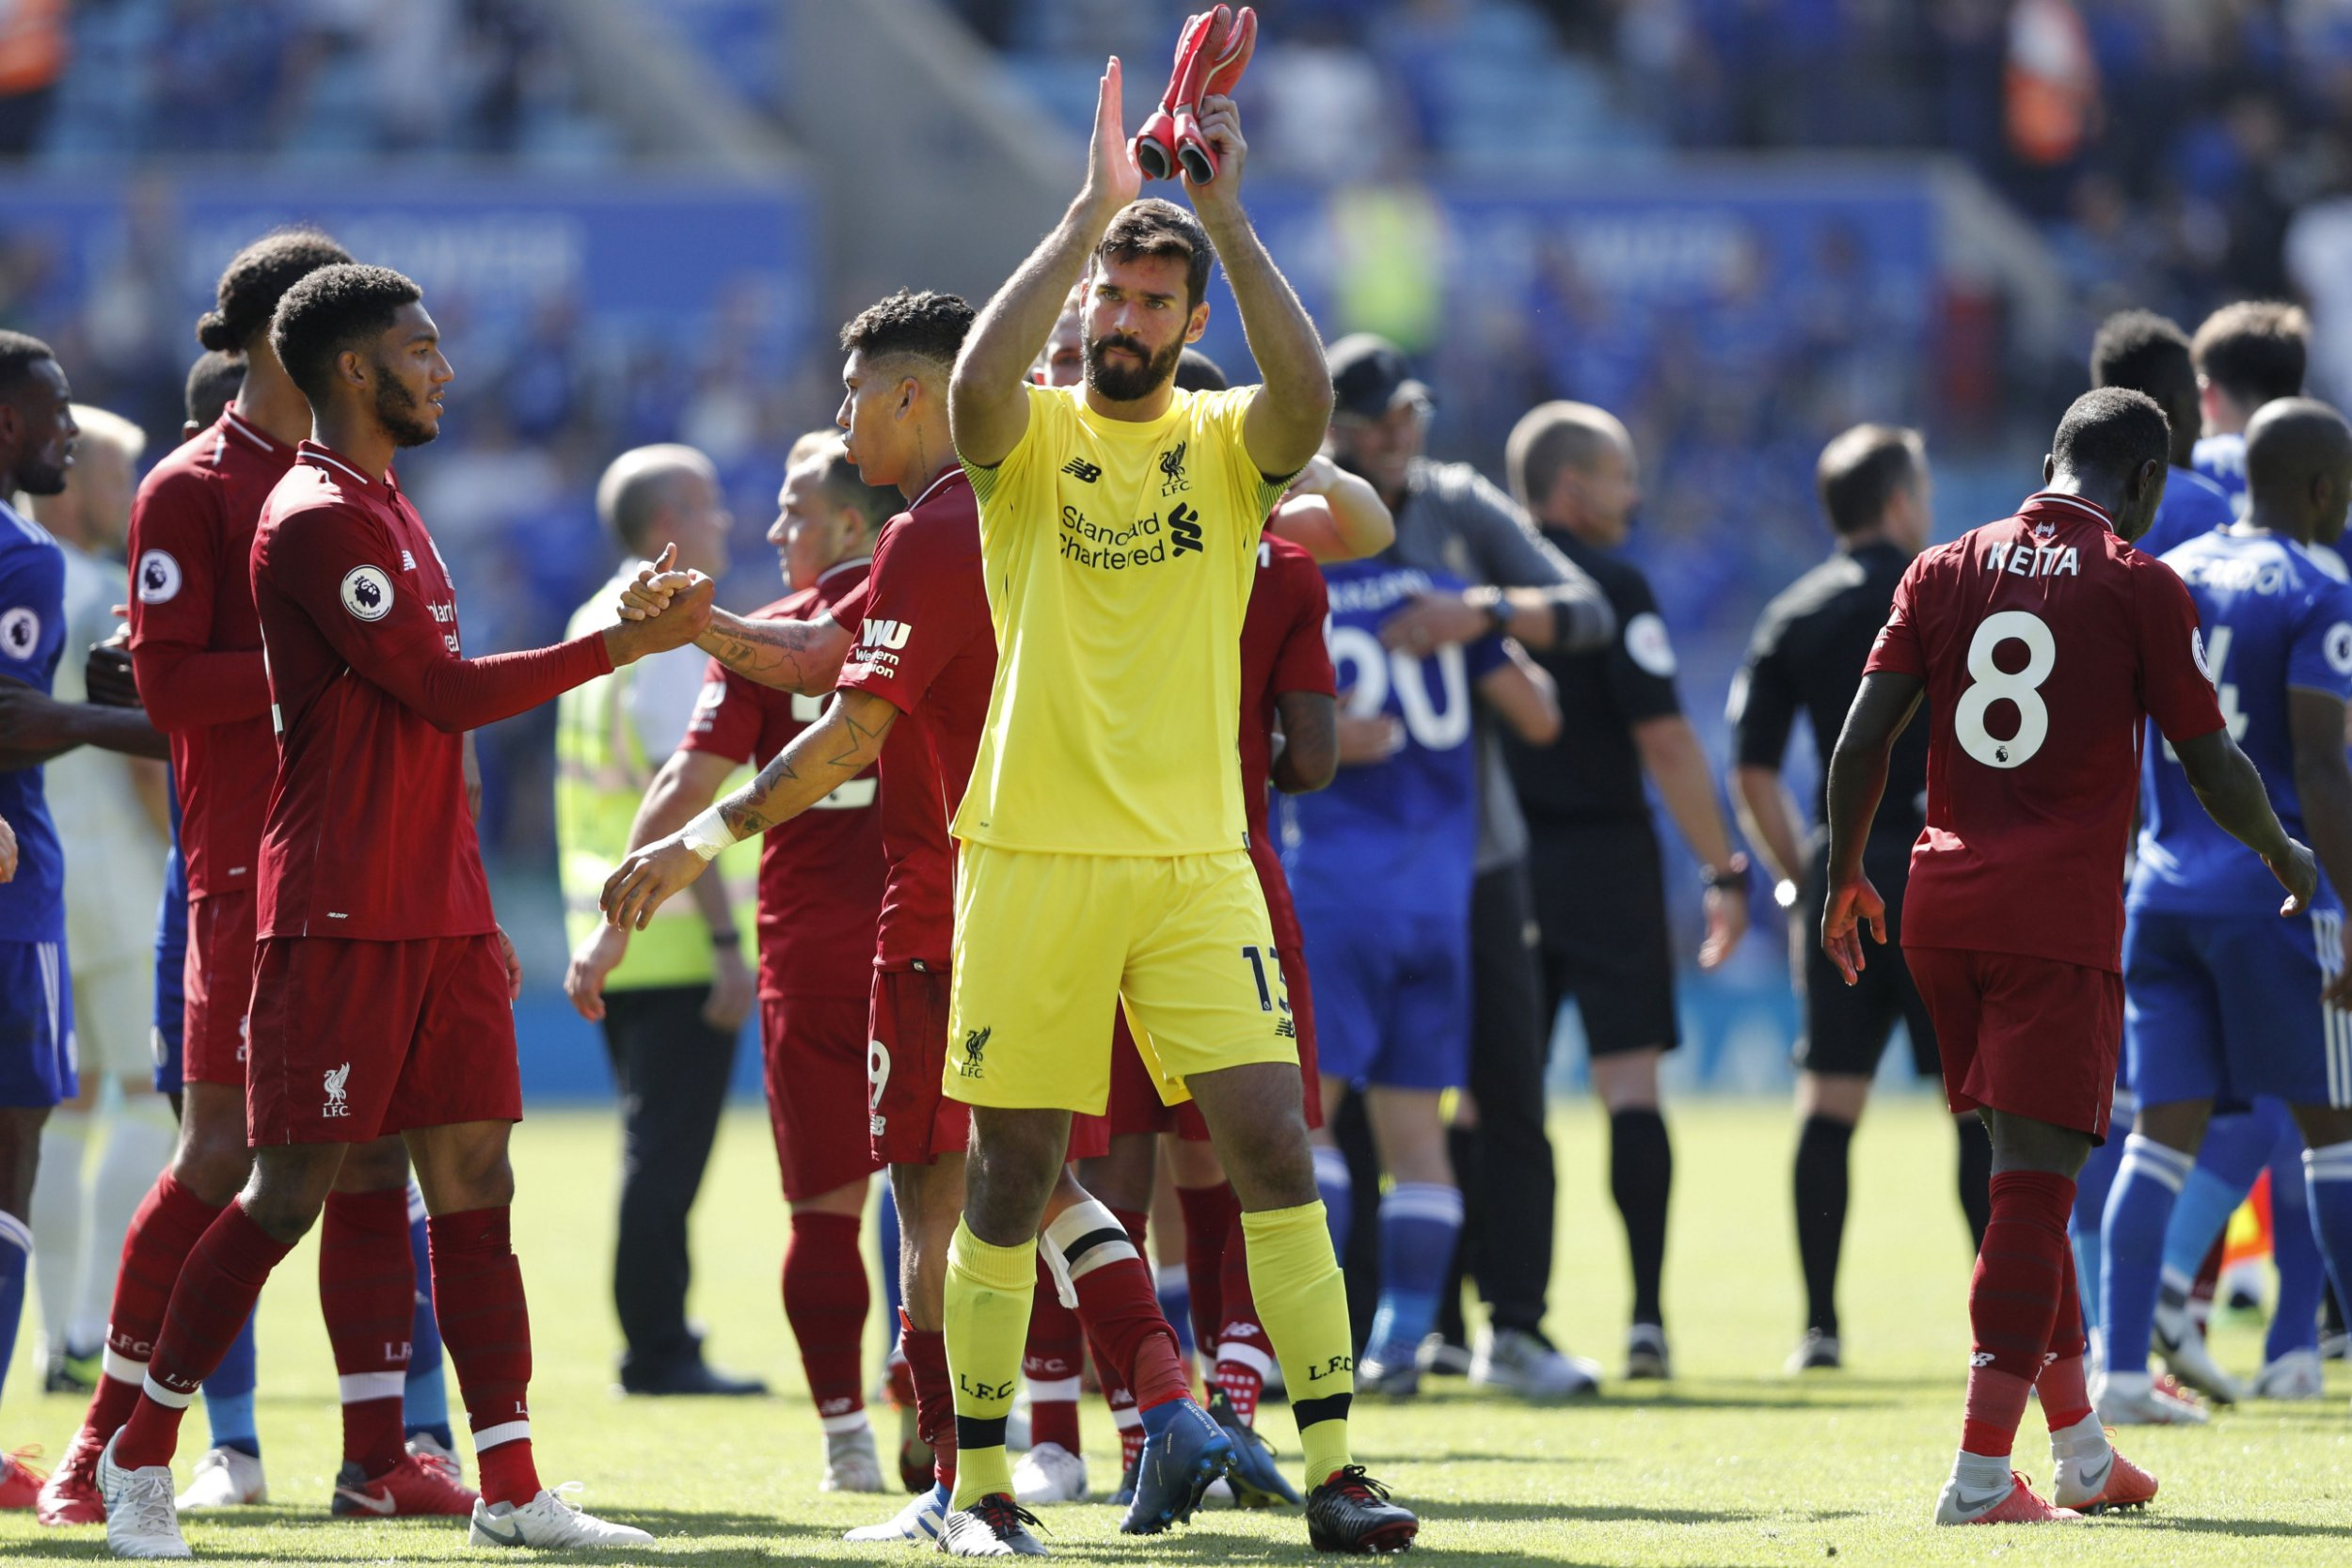 Liverpool's Brazilian goalkeeper Alisson Becker gestures after the final whistle during the English Premier League football match between Leicester City and Liverpool at King Power Stadium in Leicester, central England on September 1, 2018. (Photo by Adrian DENNIS / AFP) / RESTRICTED TO EDITORIAL USE. No use with unauthorized audio, video, data, fixture lists, club/league logos or 'live' services. Online in-match use limited to 120 images. An additional 40 images may be used in extra time. No video emulation. Social media in-match use limited to 120 images. An additional 40 images may be used in extra time. No use in betting publications, games or single club/league/player publications. / ADRIAN DENNIS/AFP/Getty Images